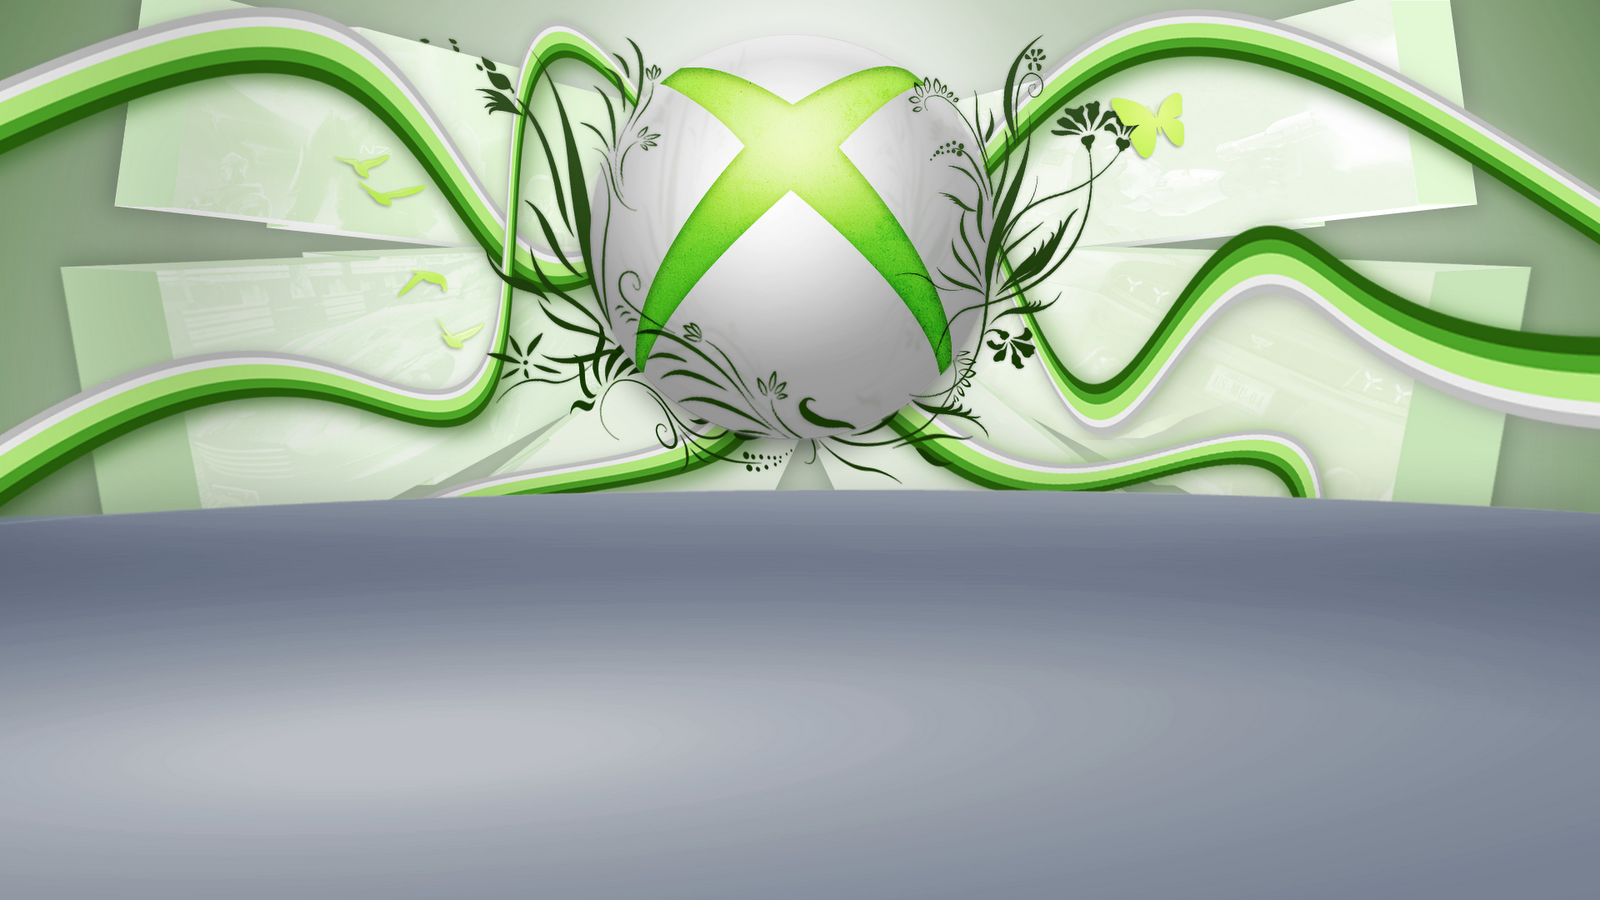 Xbox 360 Wallpapers Dashboard wallpaper : free nxe wallpapers